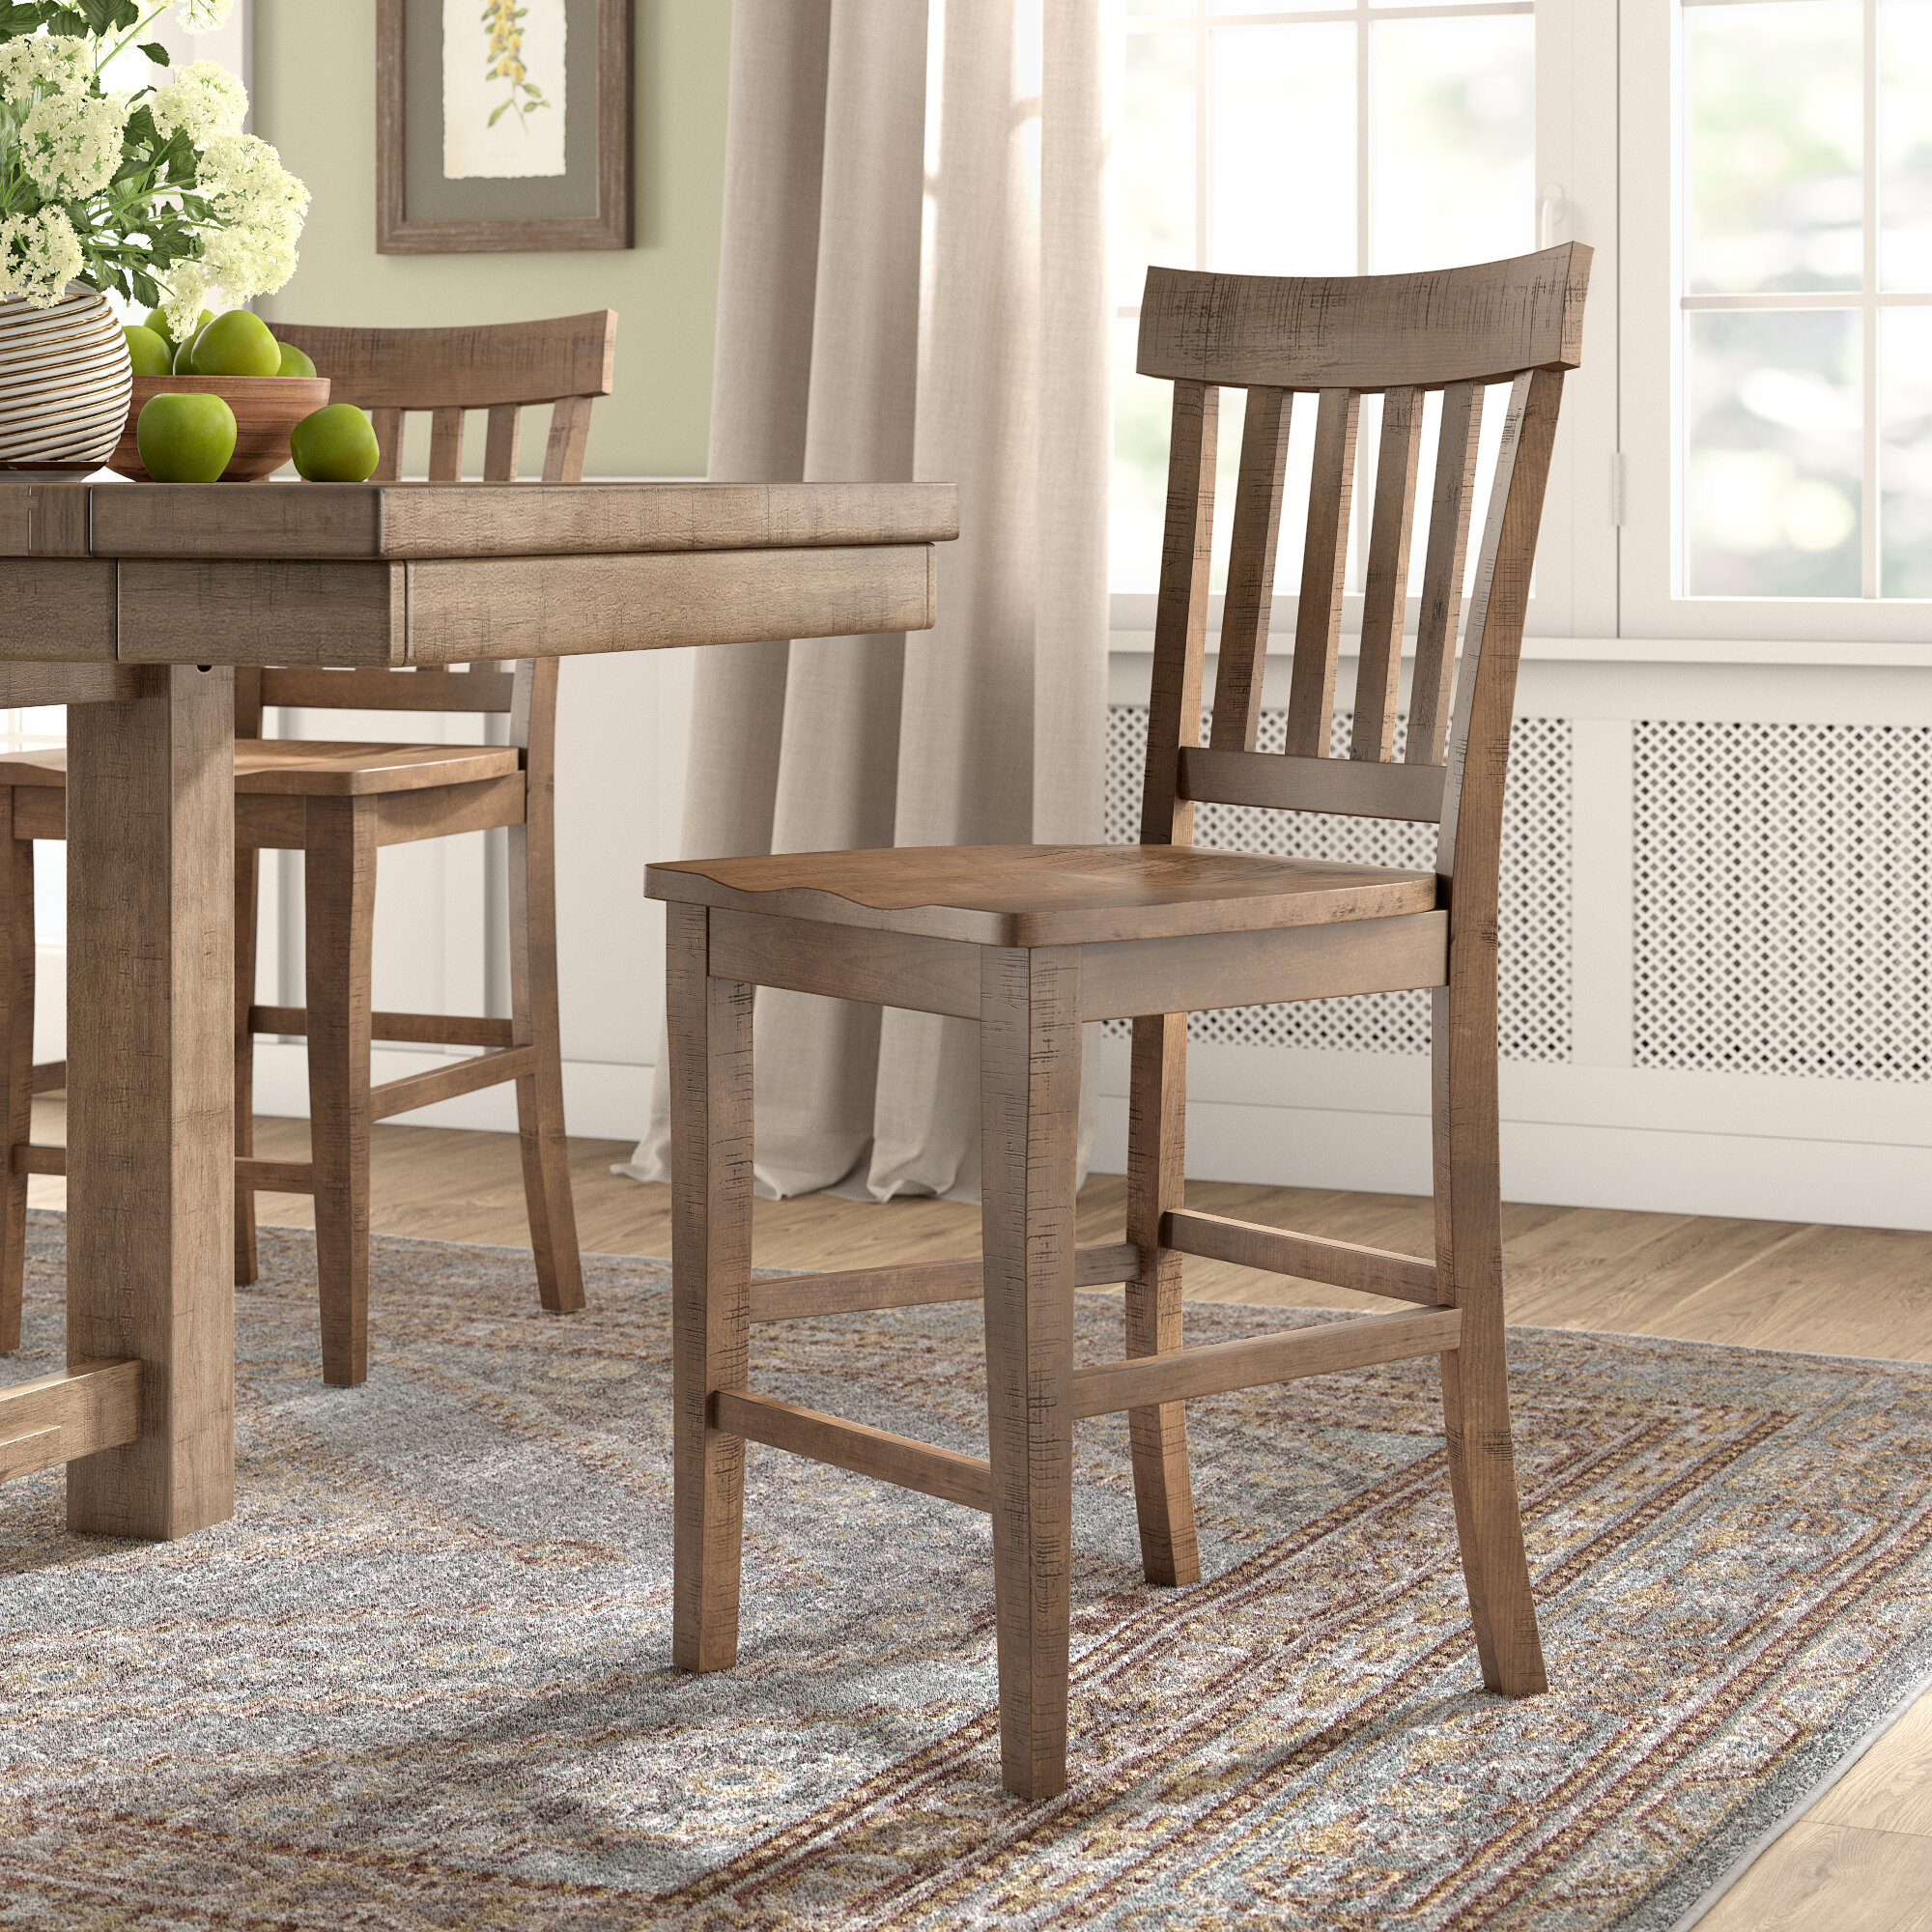 Birch Lane Throughout Rossi 5 Piece Dining Sets (View 10 of 20)